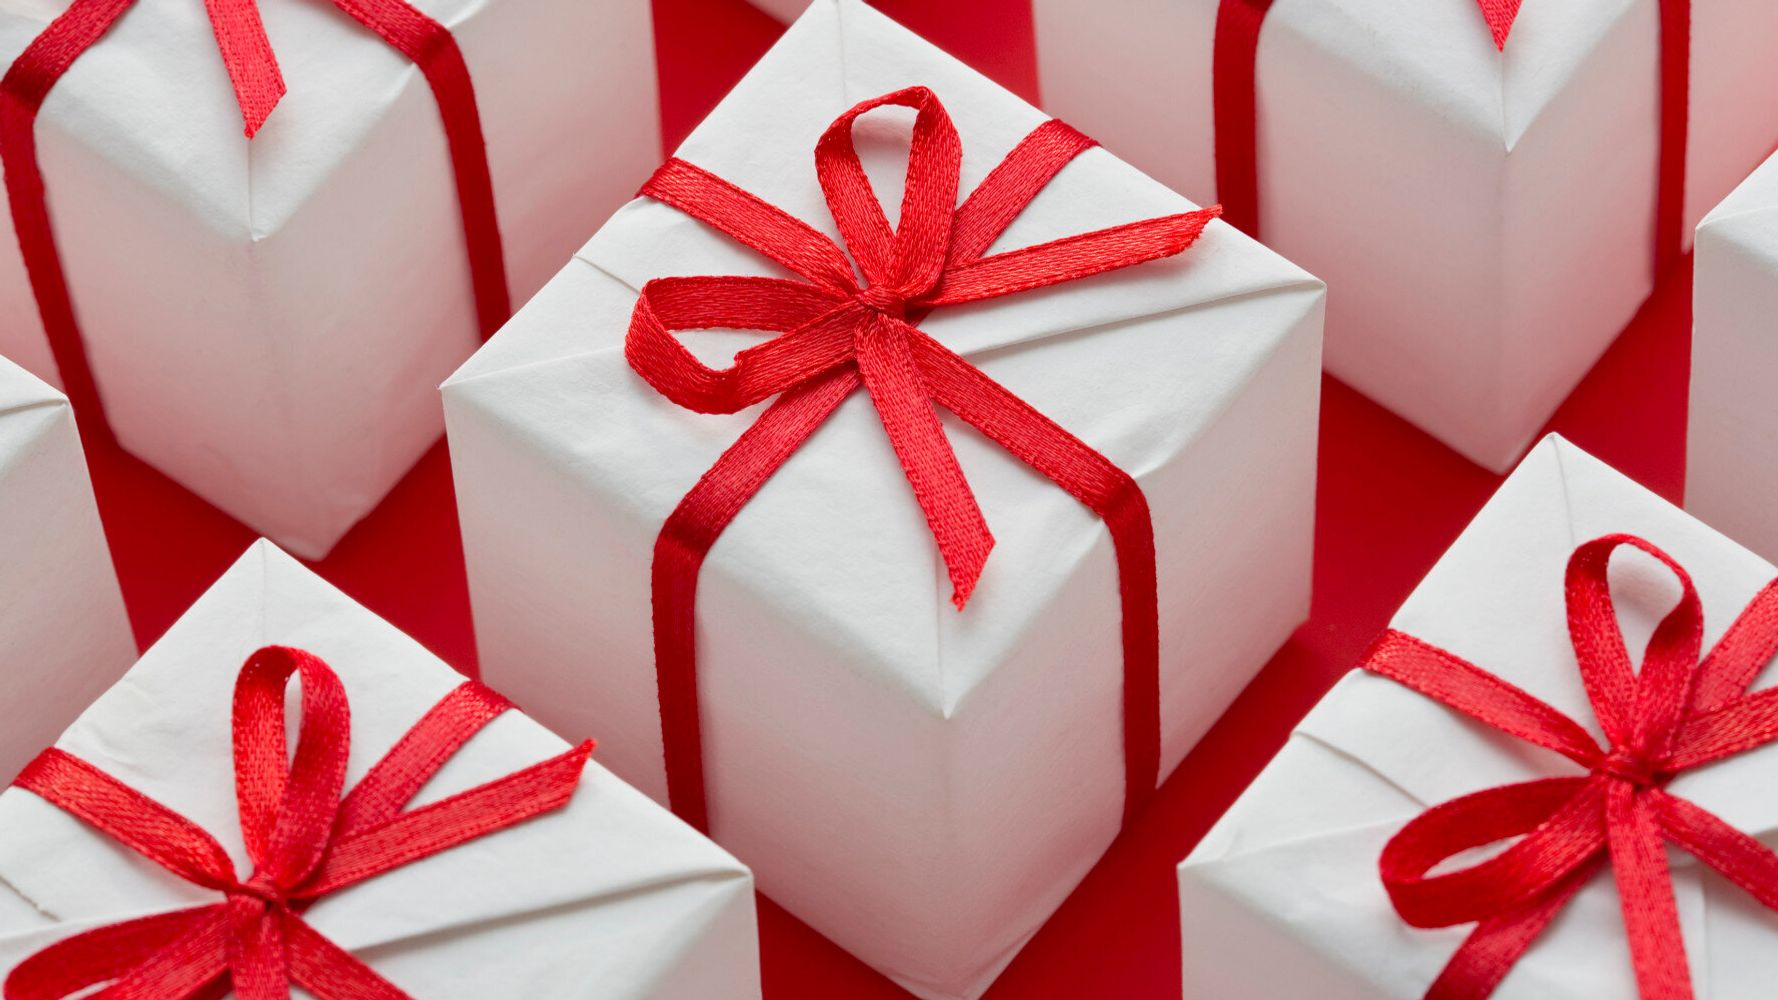 Characteristics of a good corporate gift